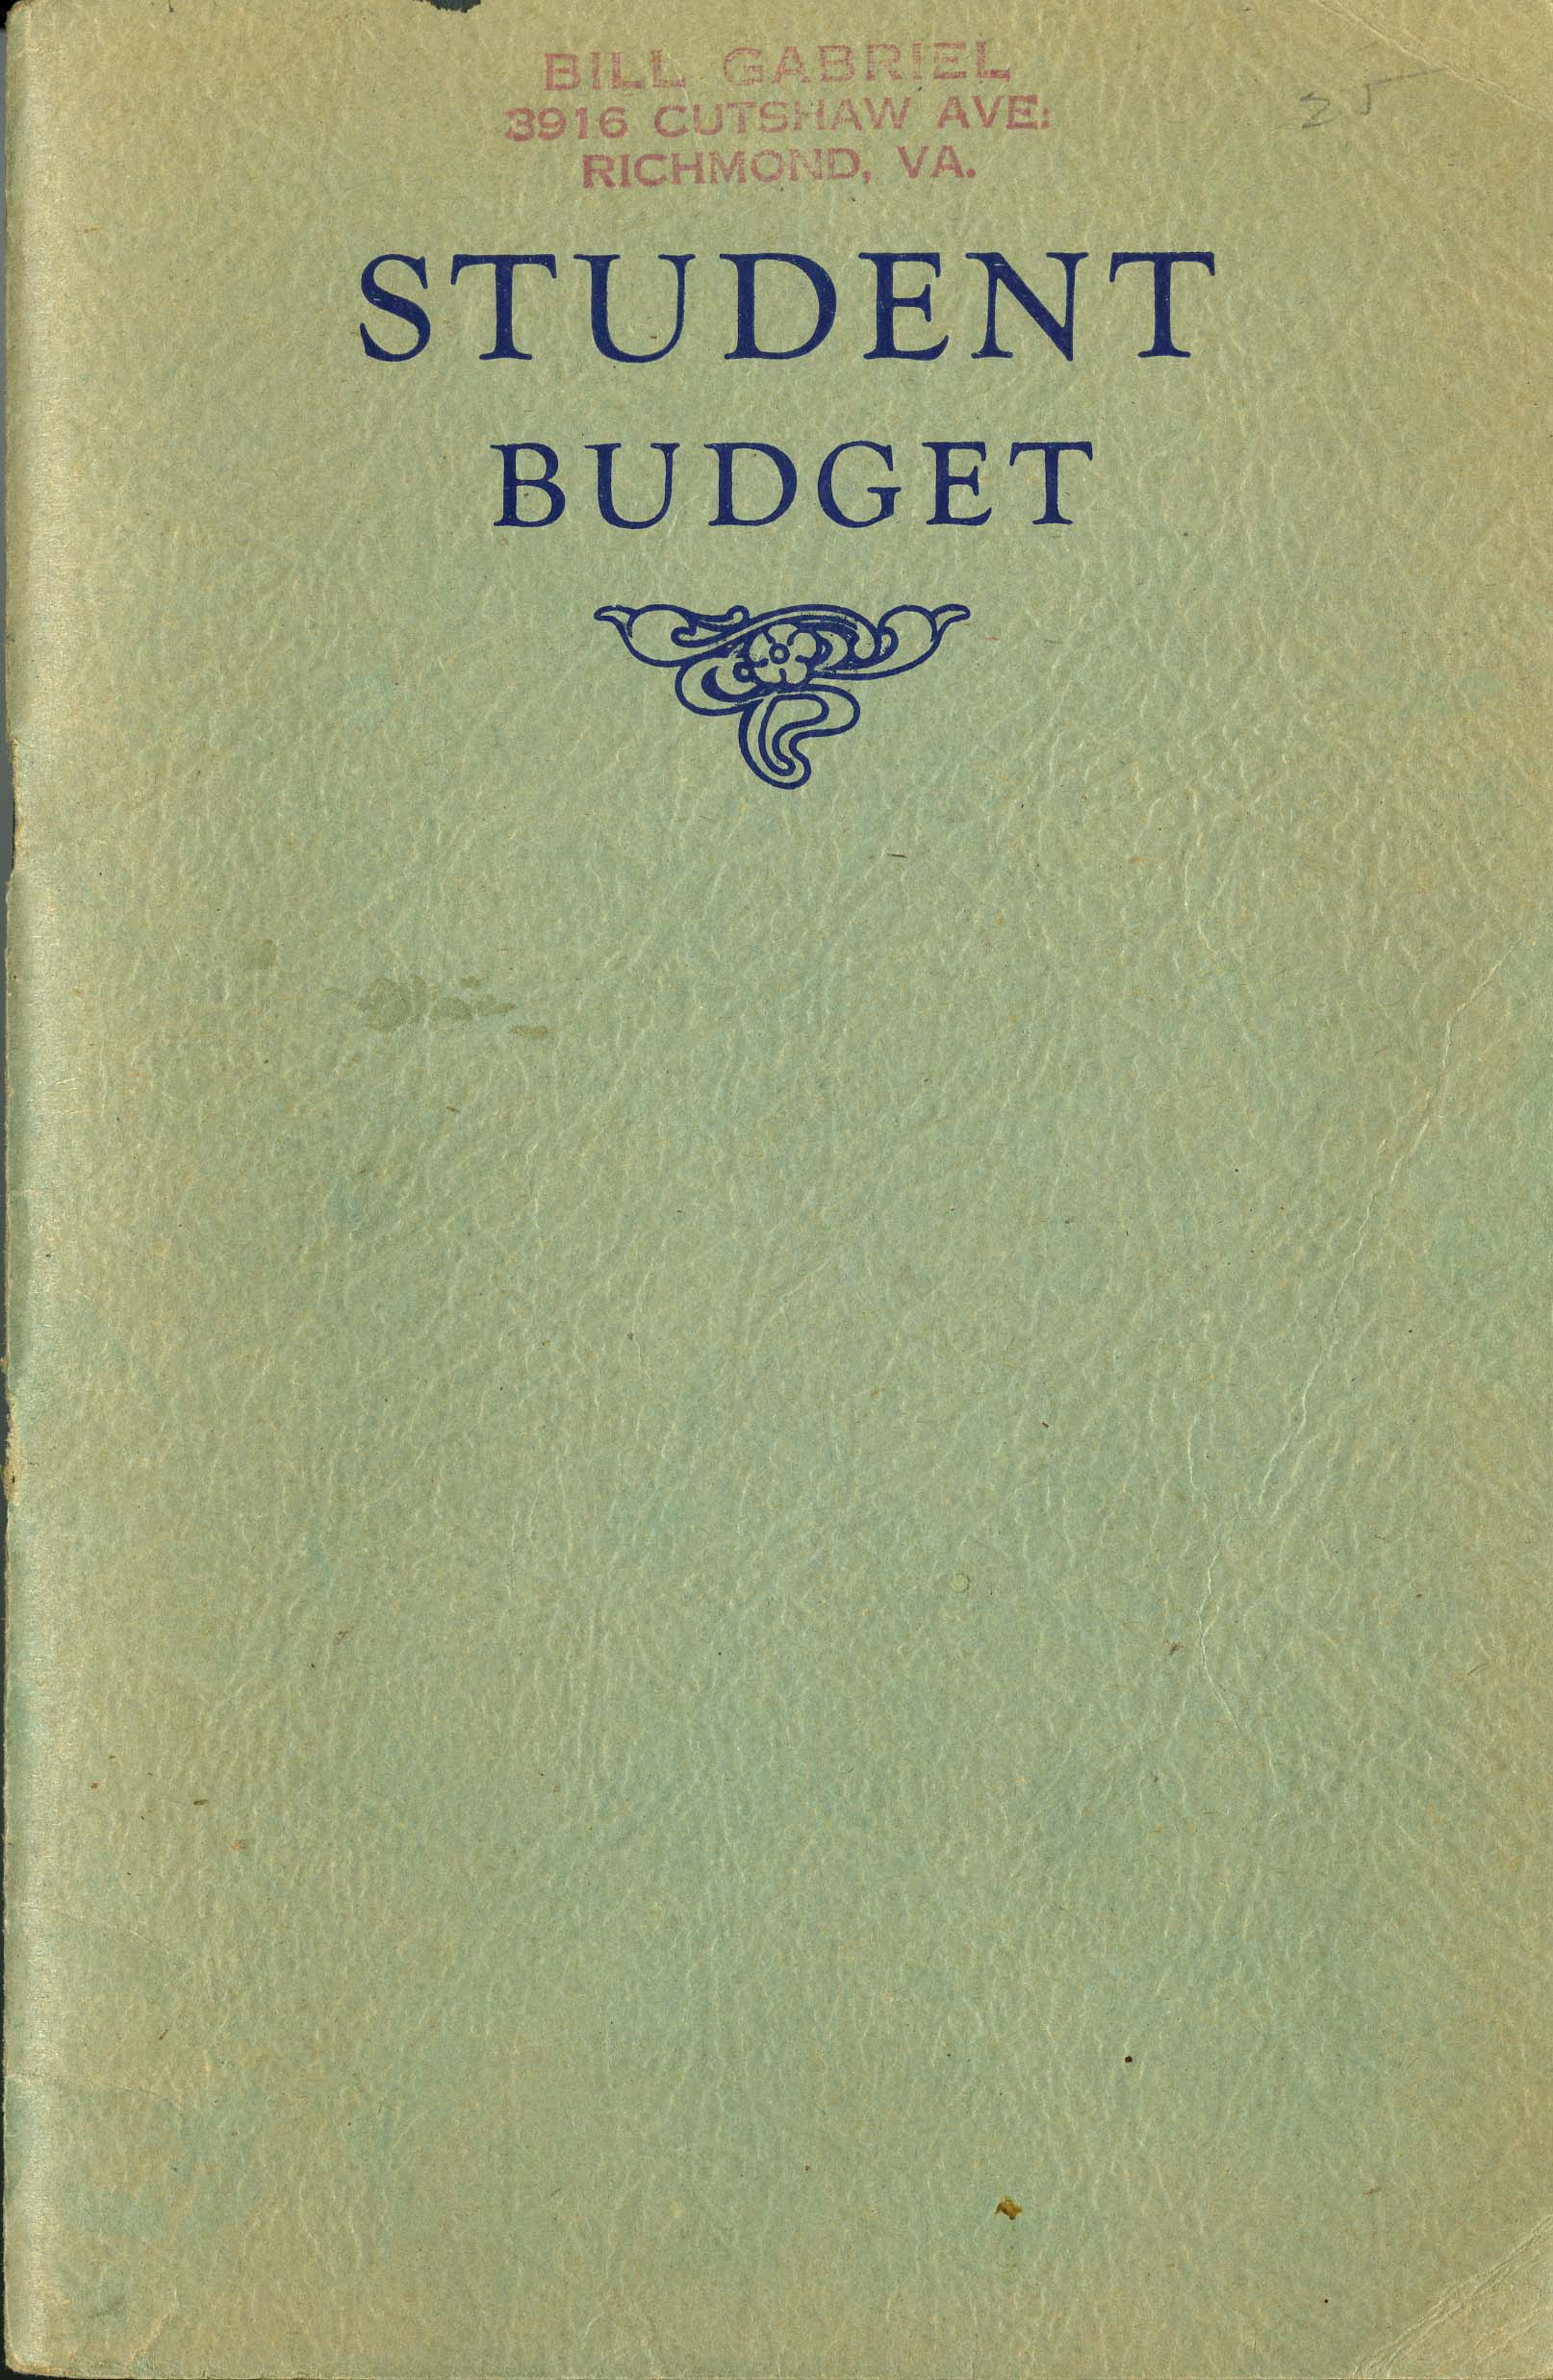 Student Budget cover